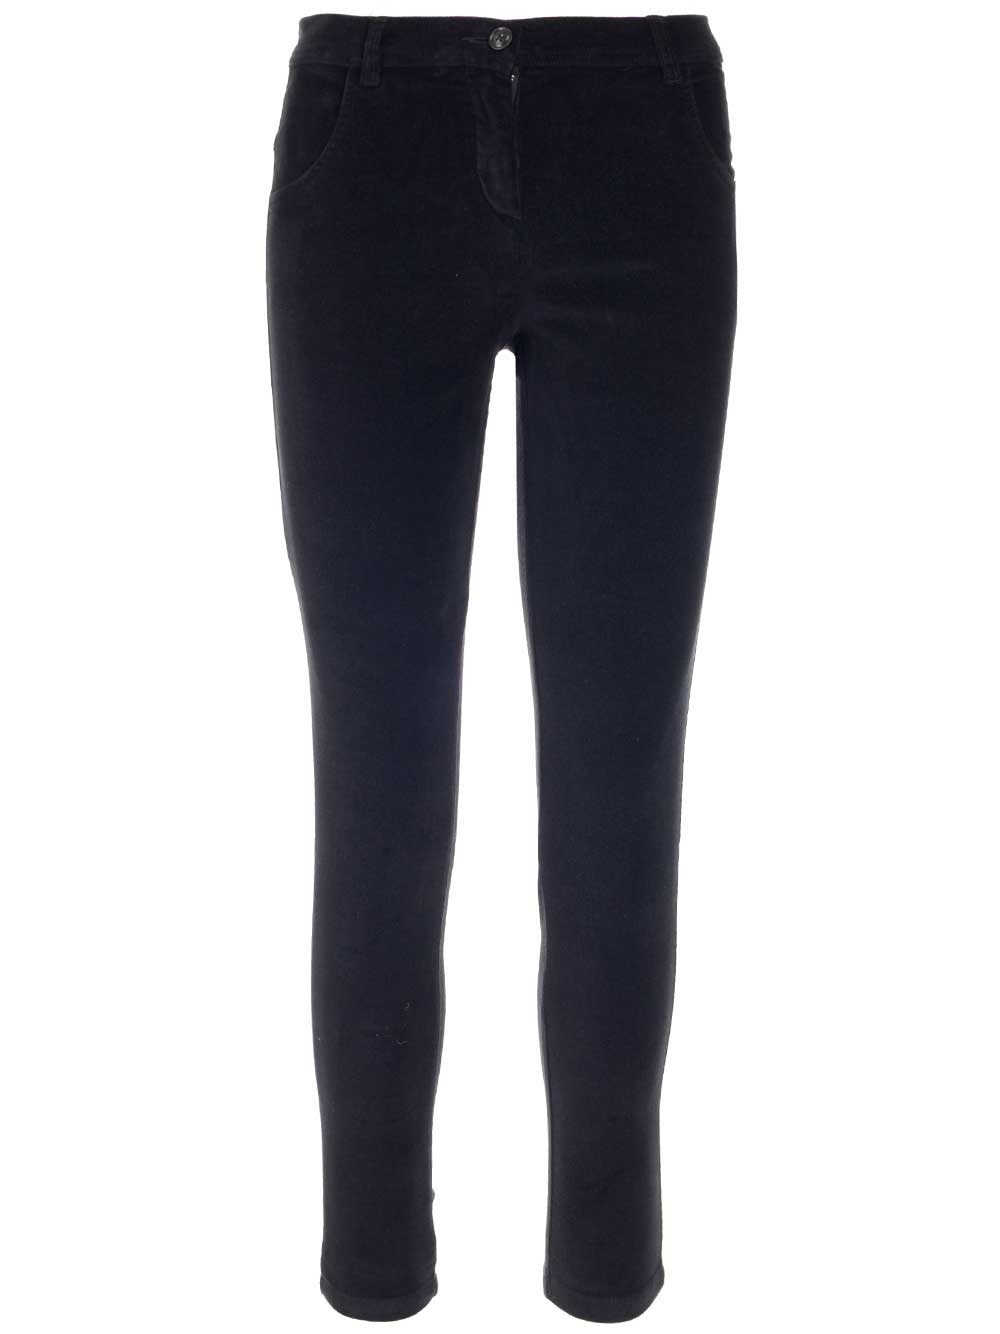 Woolrich WOOLRICH SLIM FIT STRETCH JEANS